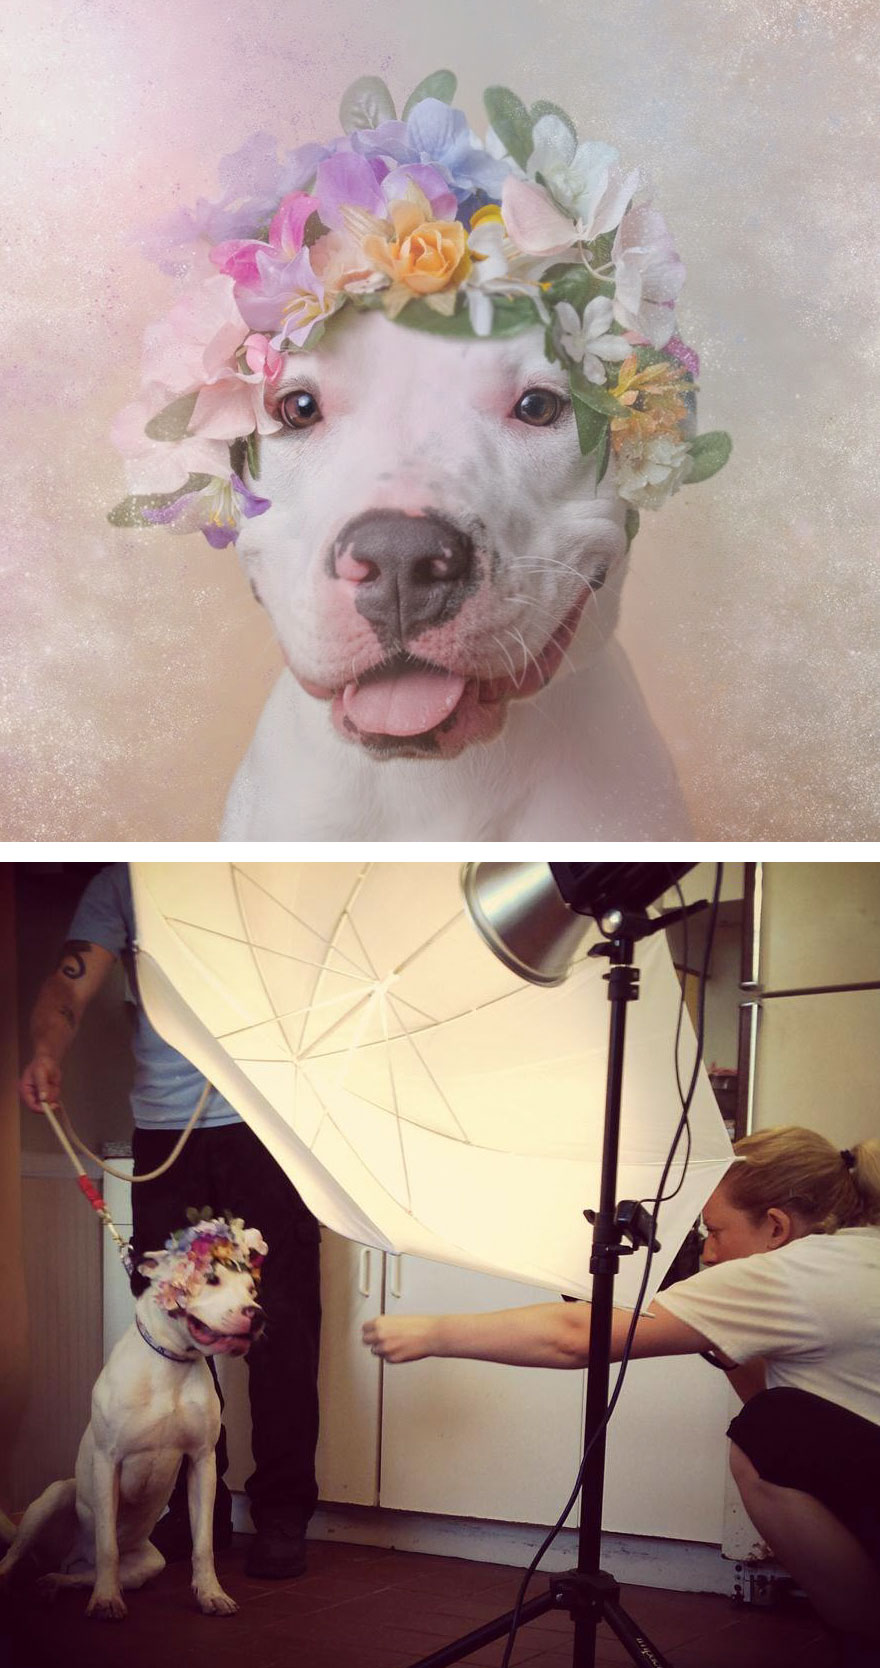 Behind The Scenes Of Pit Bull Flower Power Photoshoot